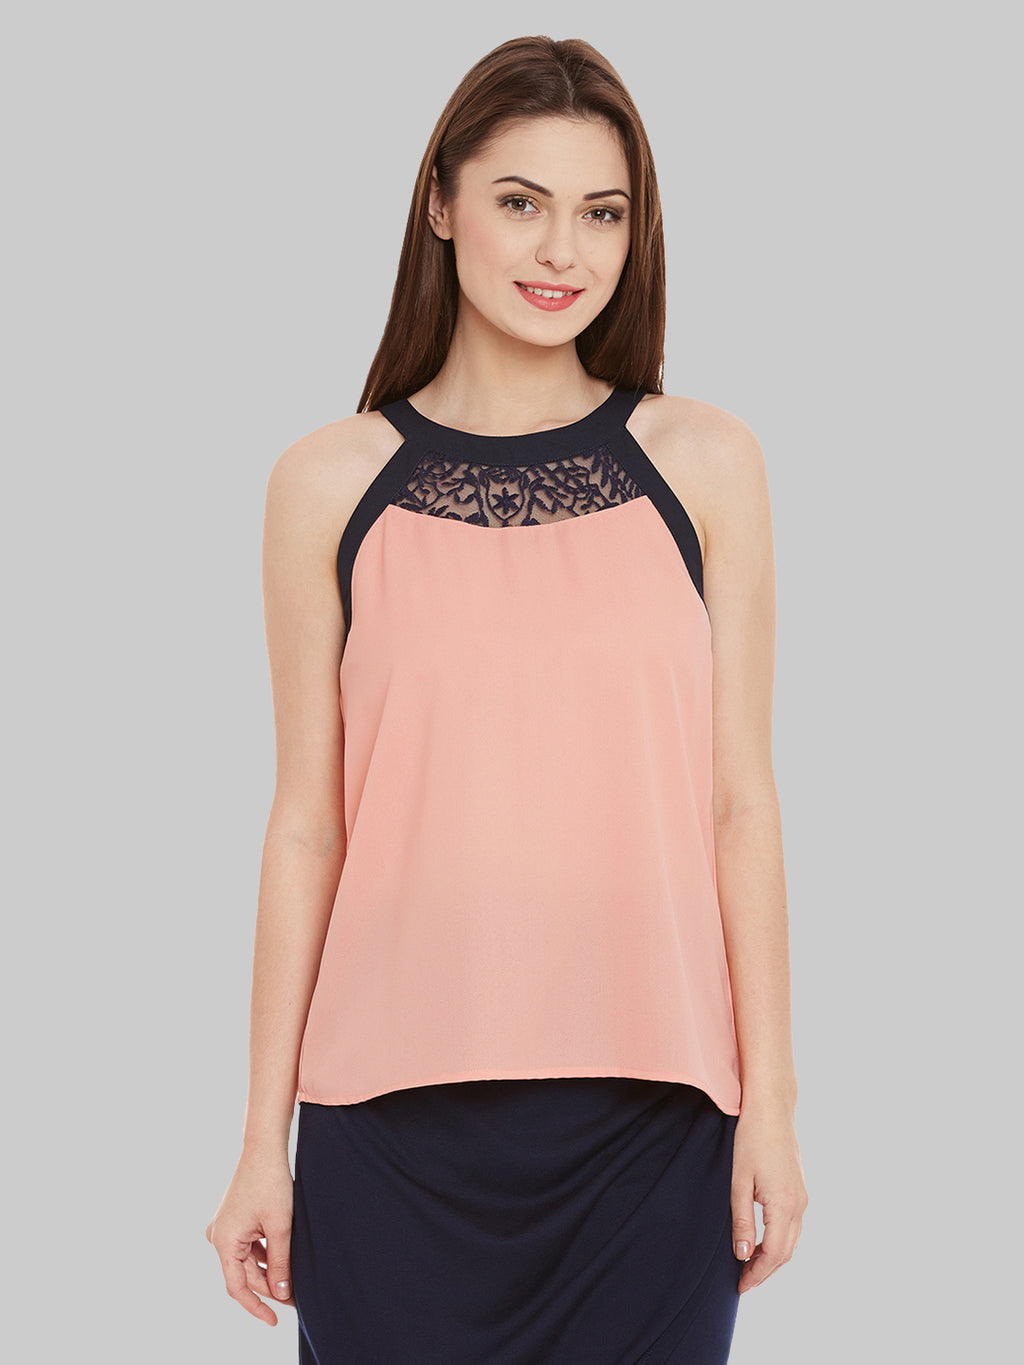 Contrast Lace Top | Znx4ever.com